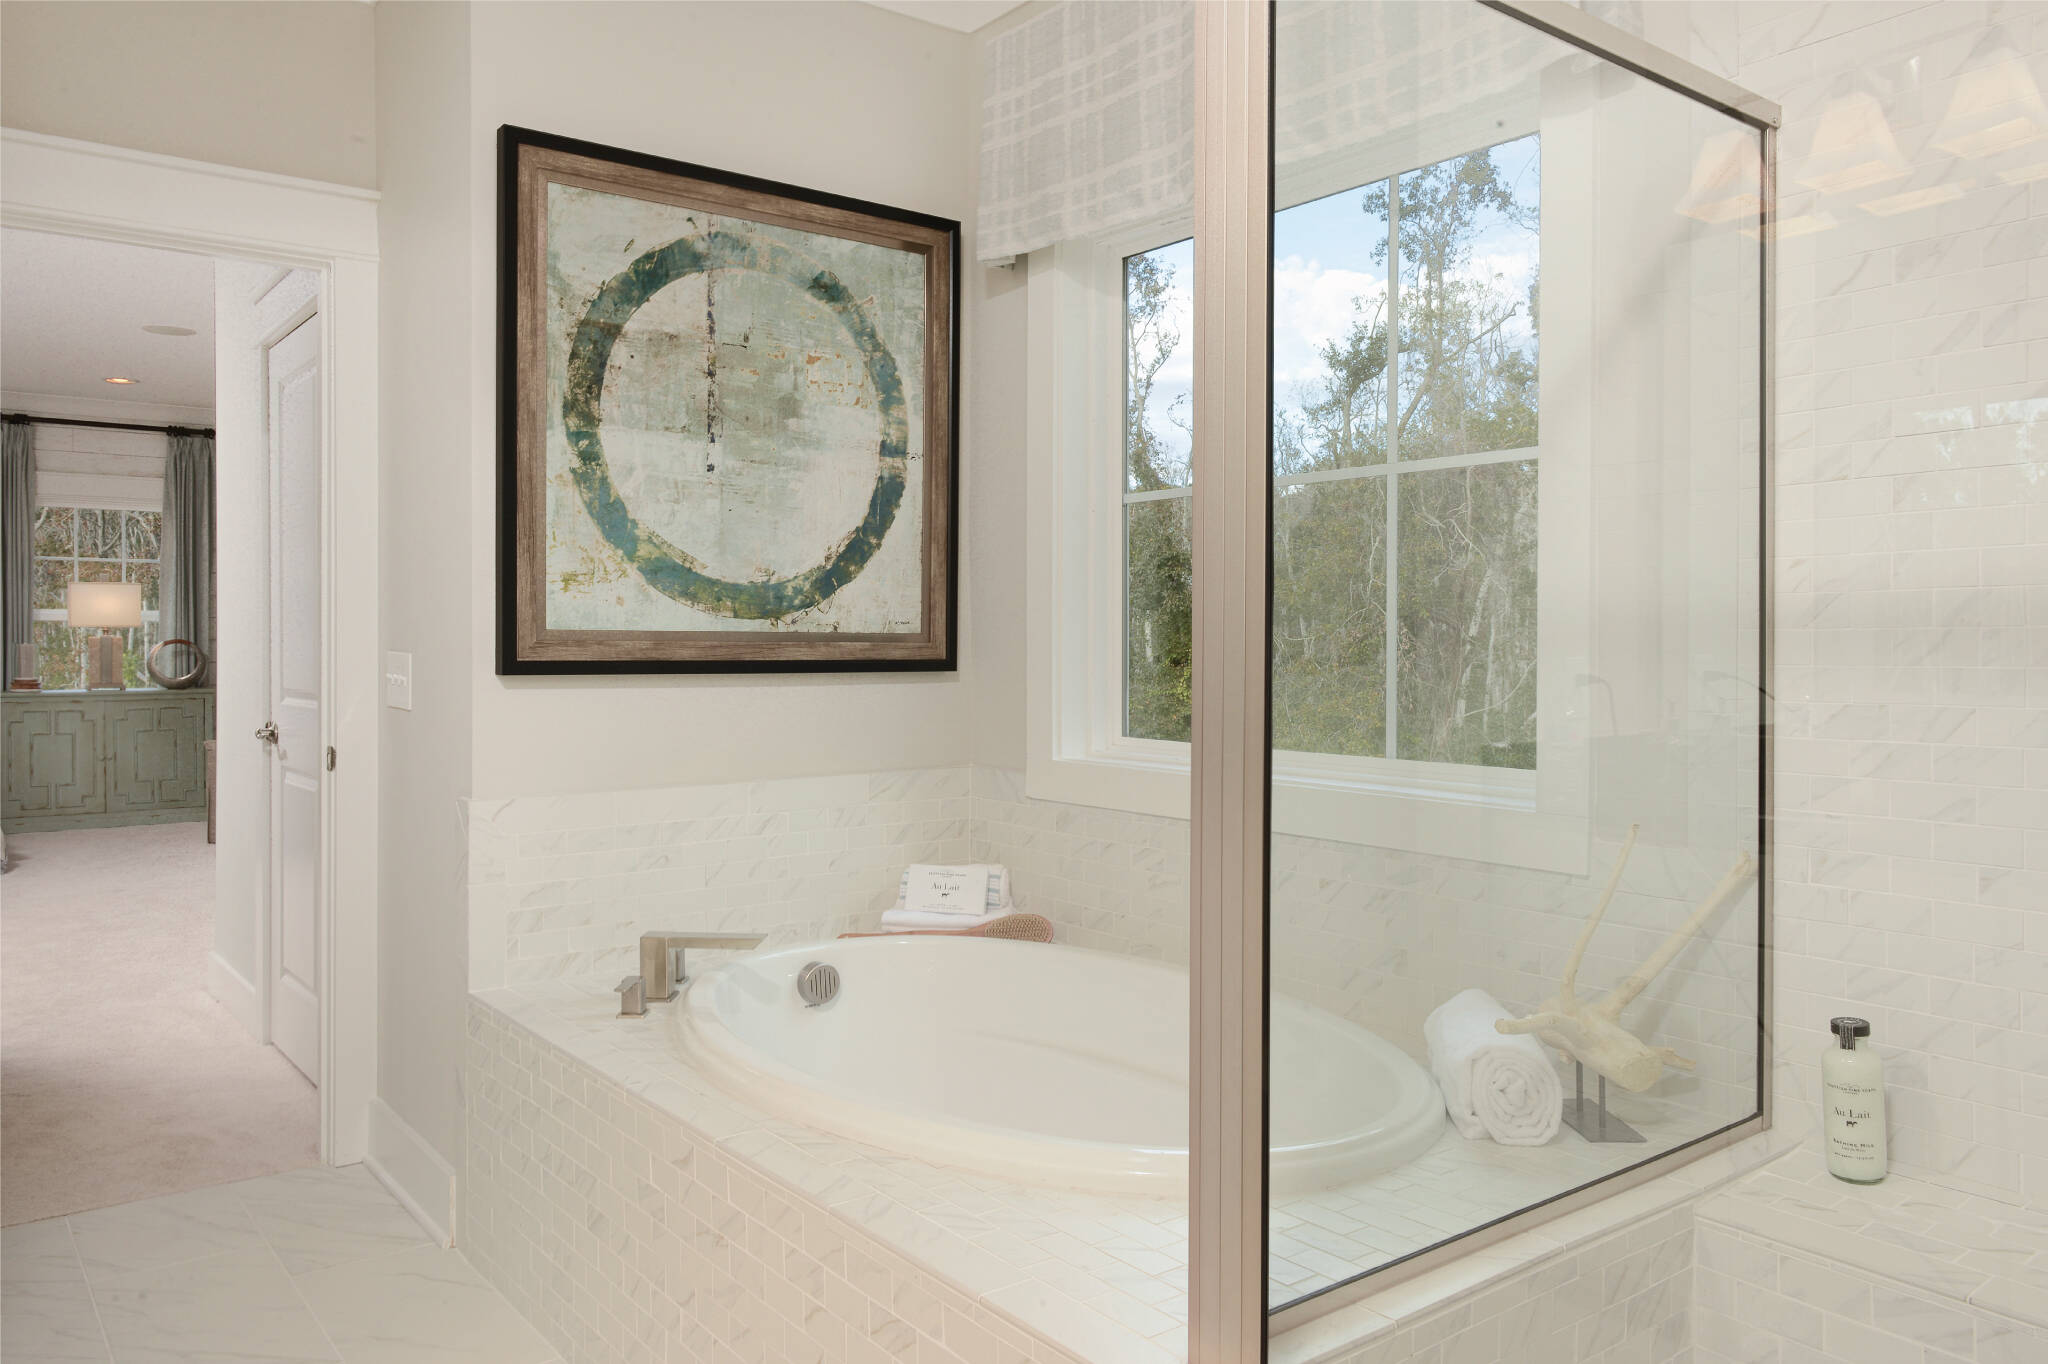 owners bath luxury in surfside at magnolia place new townhomes in hilton head island south carolina